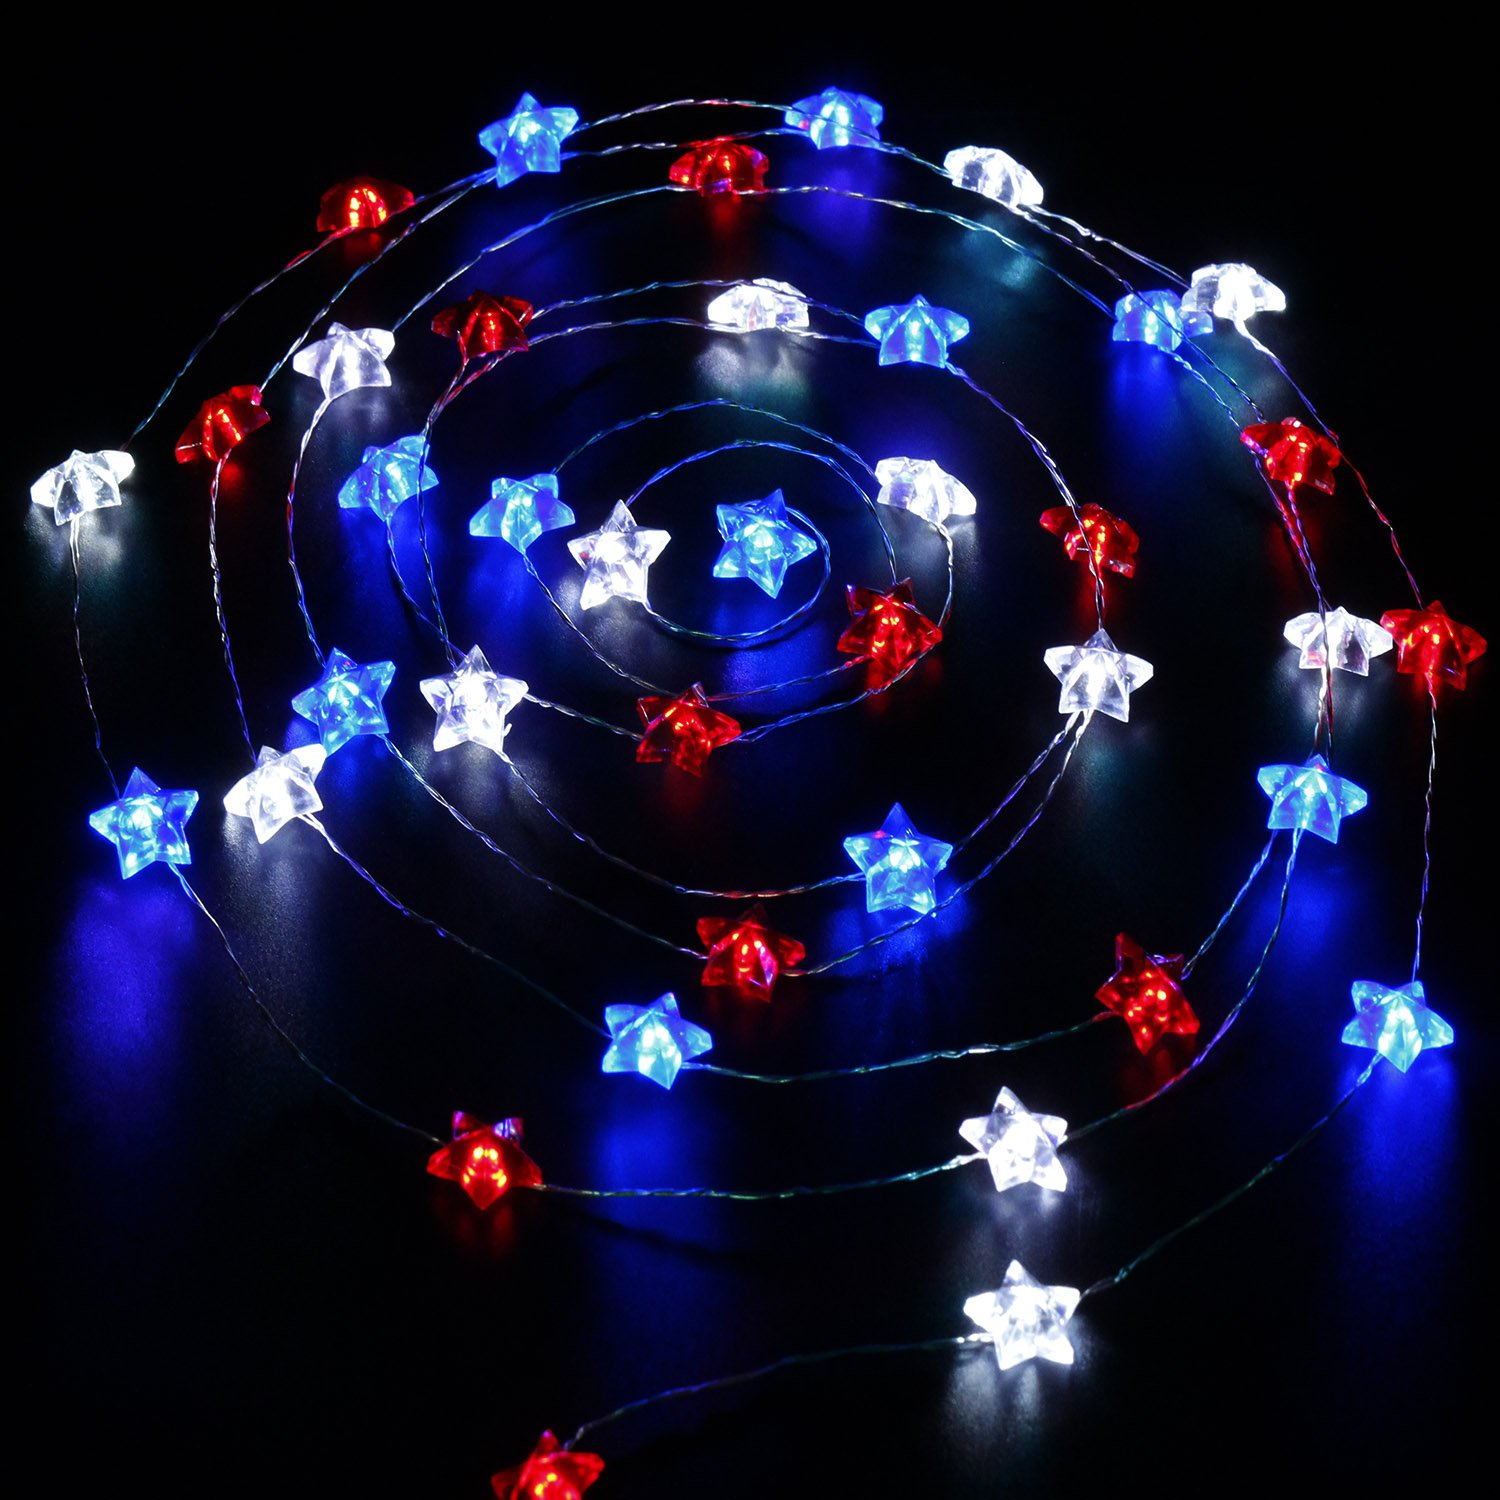 Impress Life Independence Day Decor, USA American Stars Flag Lighting 4th July, 10ft 40 LEDs Red White Blue String Lights Battery Remote, Patriotic Decoration Memorial Day, Festival, Party